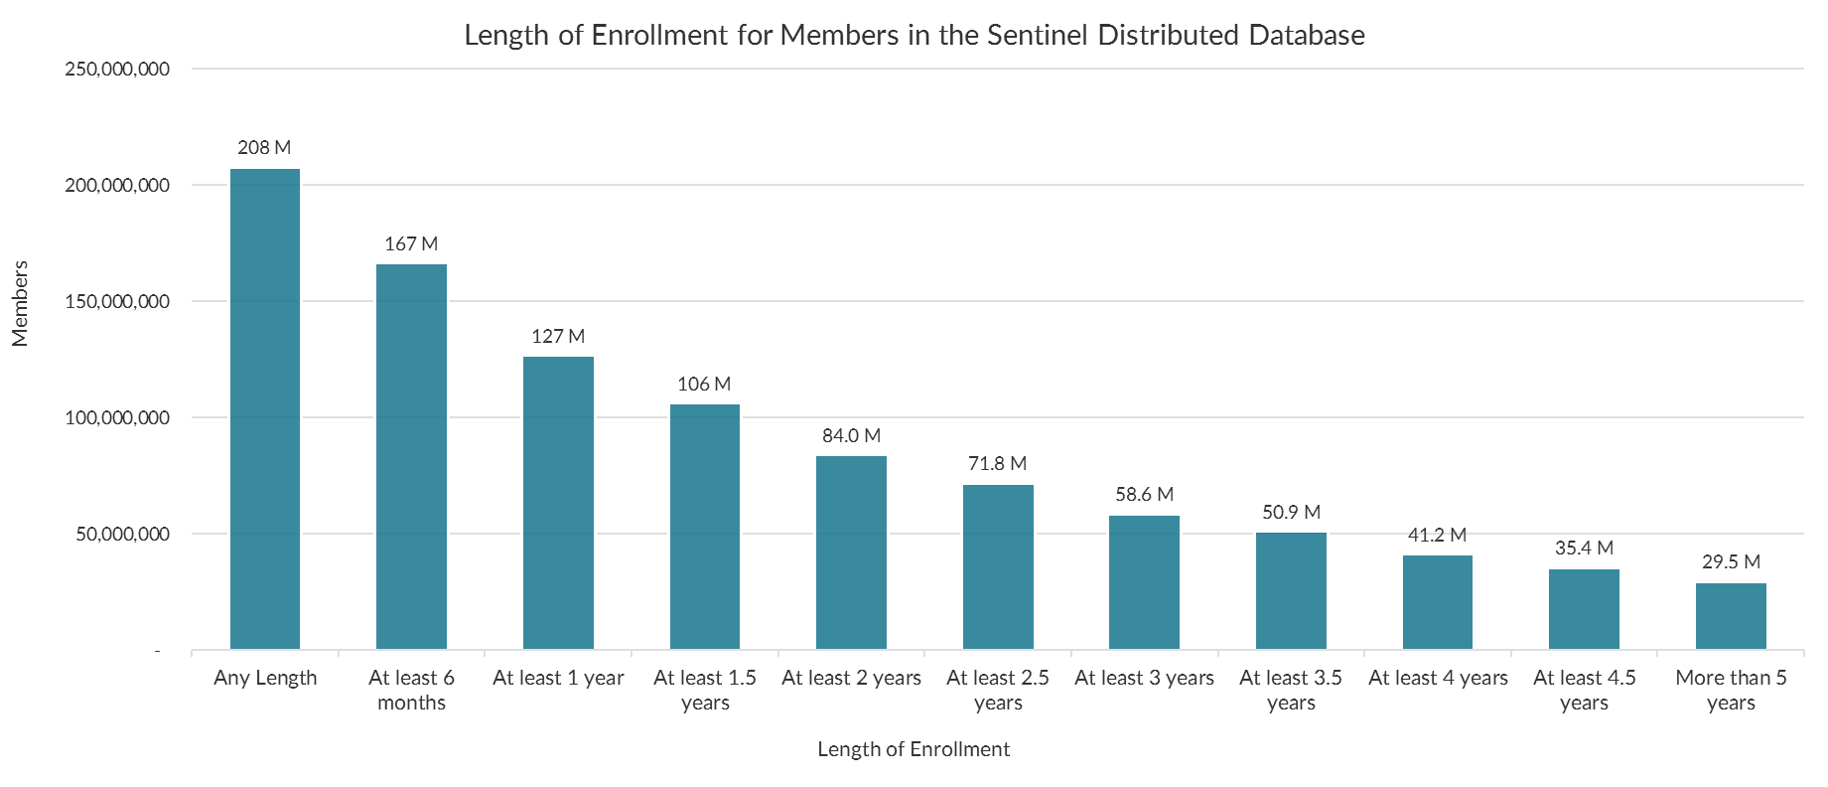 Length of Enrollment for Members in the Sentinel Distributed Database